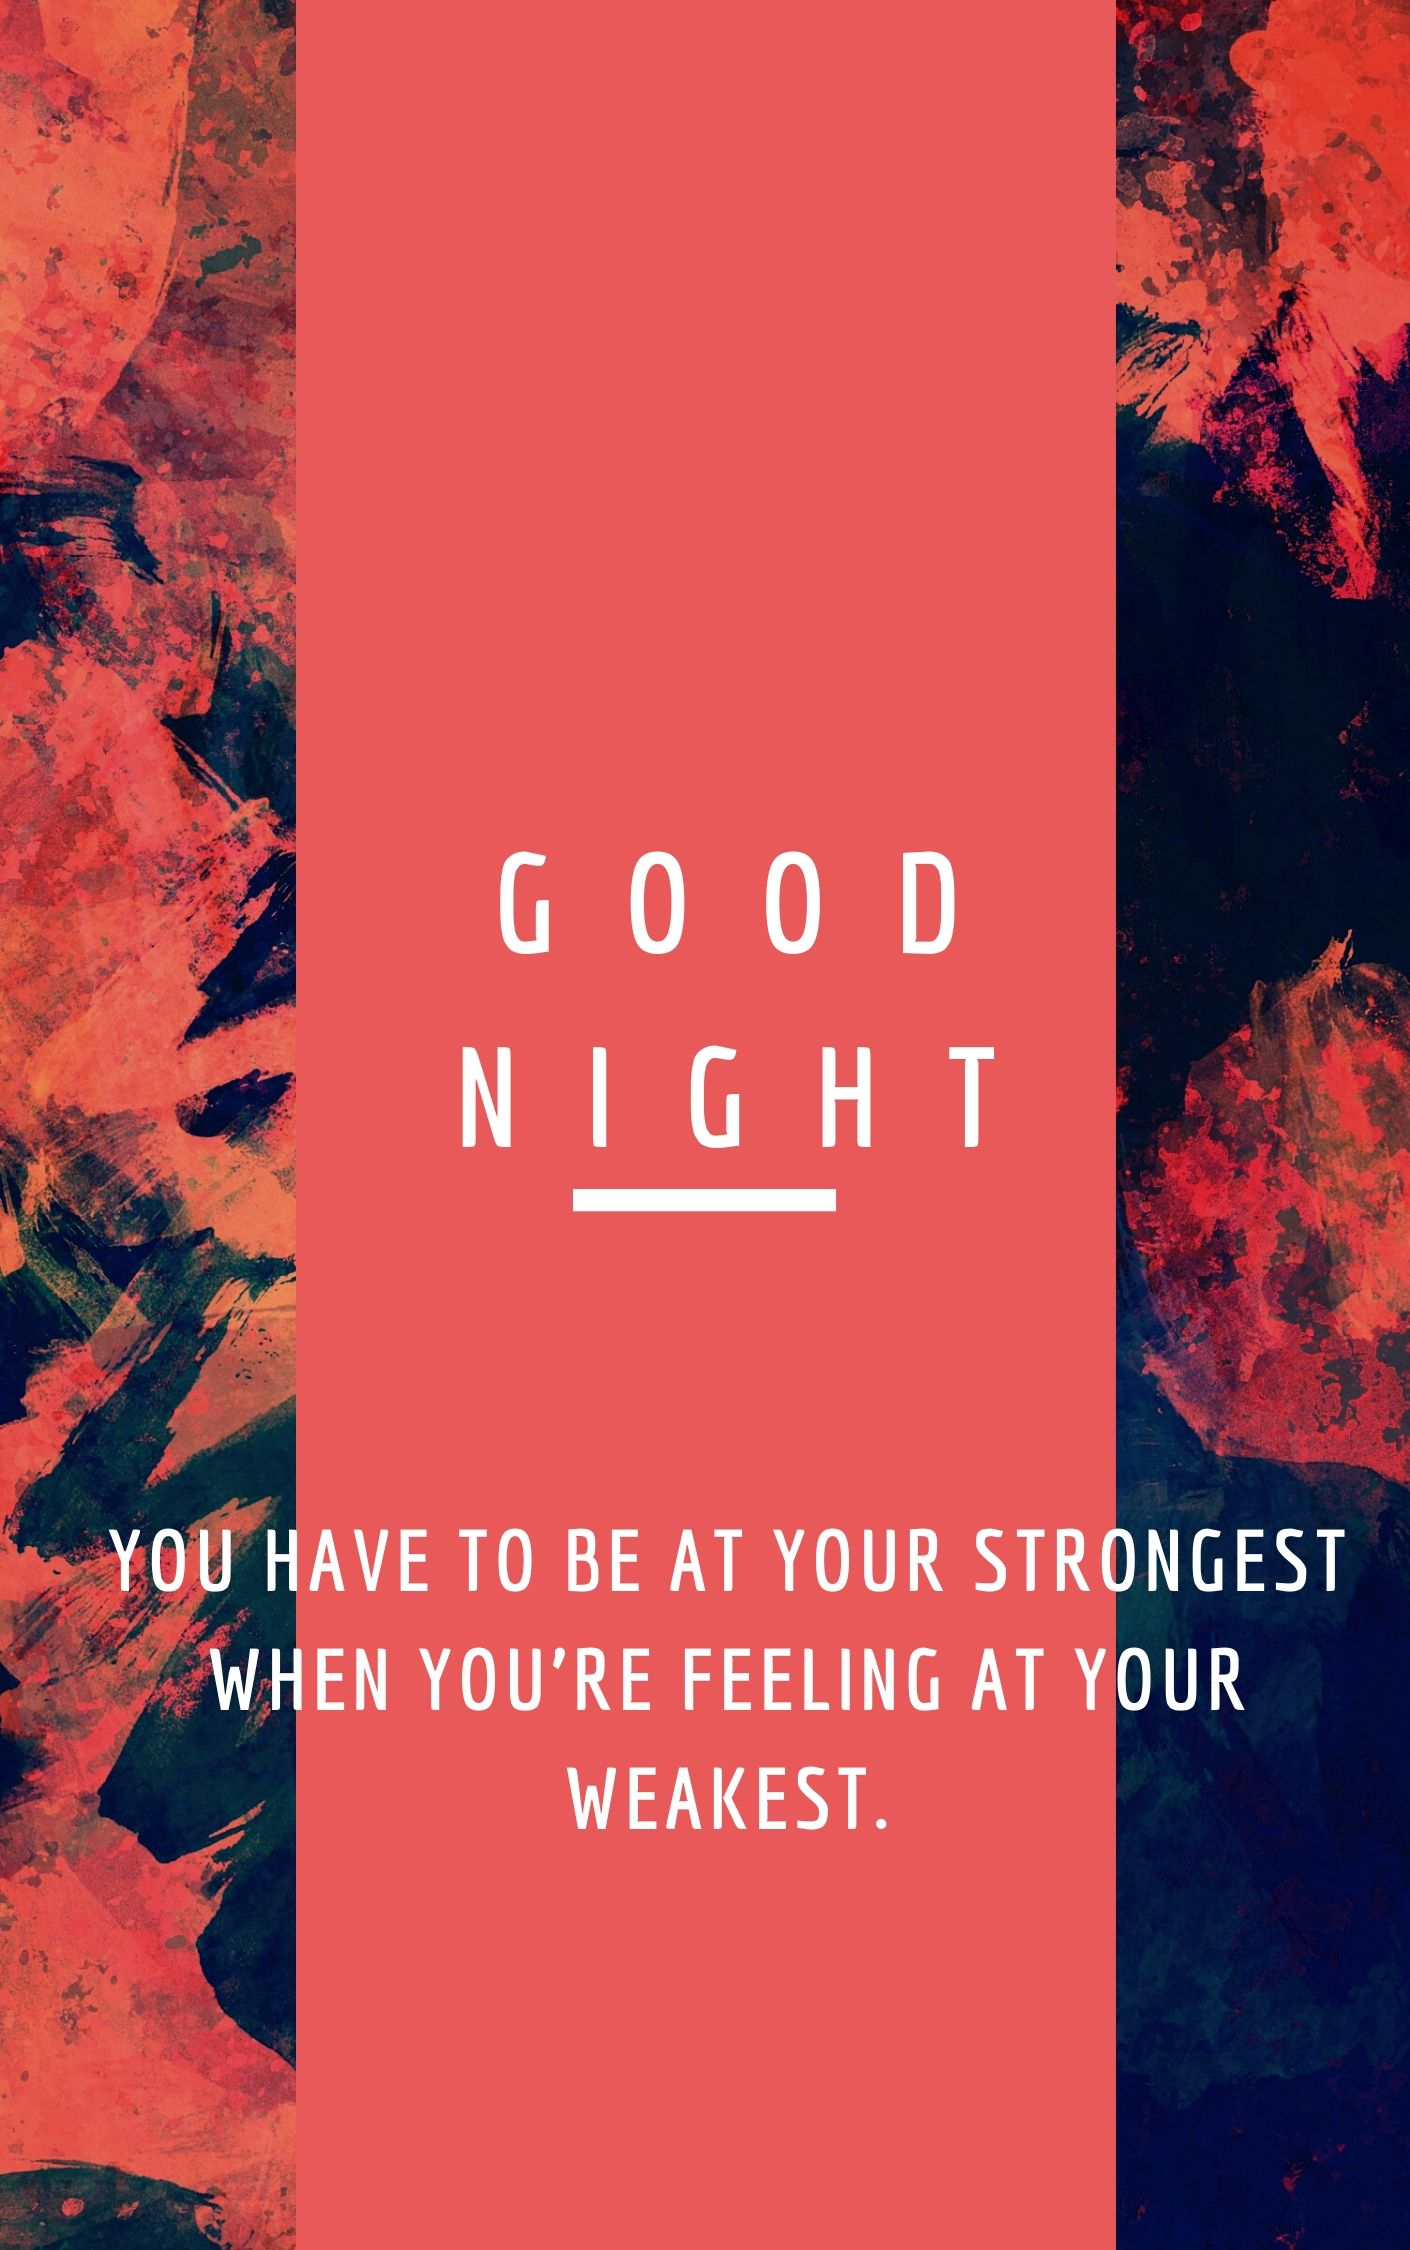 Good Night Quote 22You have to be at your strongest when youre feeling at your weakest22 full HD free download.